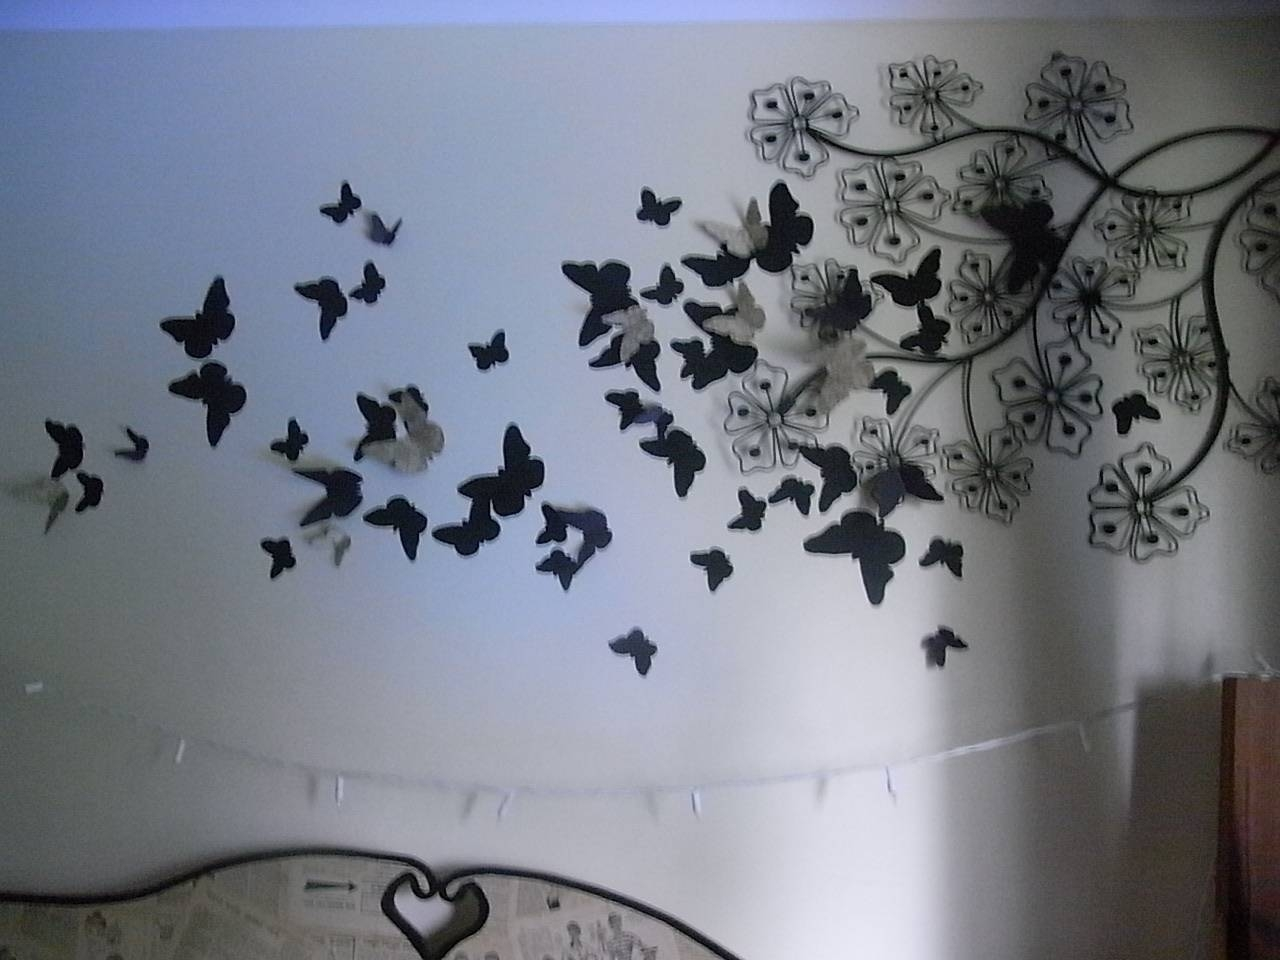 Diy 3D Wall Art Butterflies | Wallartideas Pertaining To Current Butterflies 3D Wall Art (View 13 of 20)